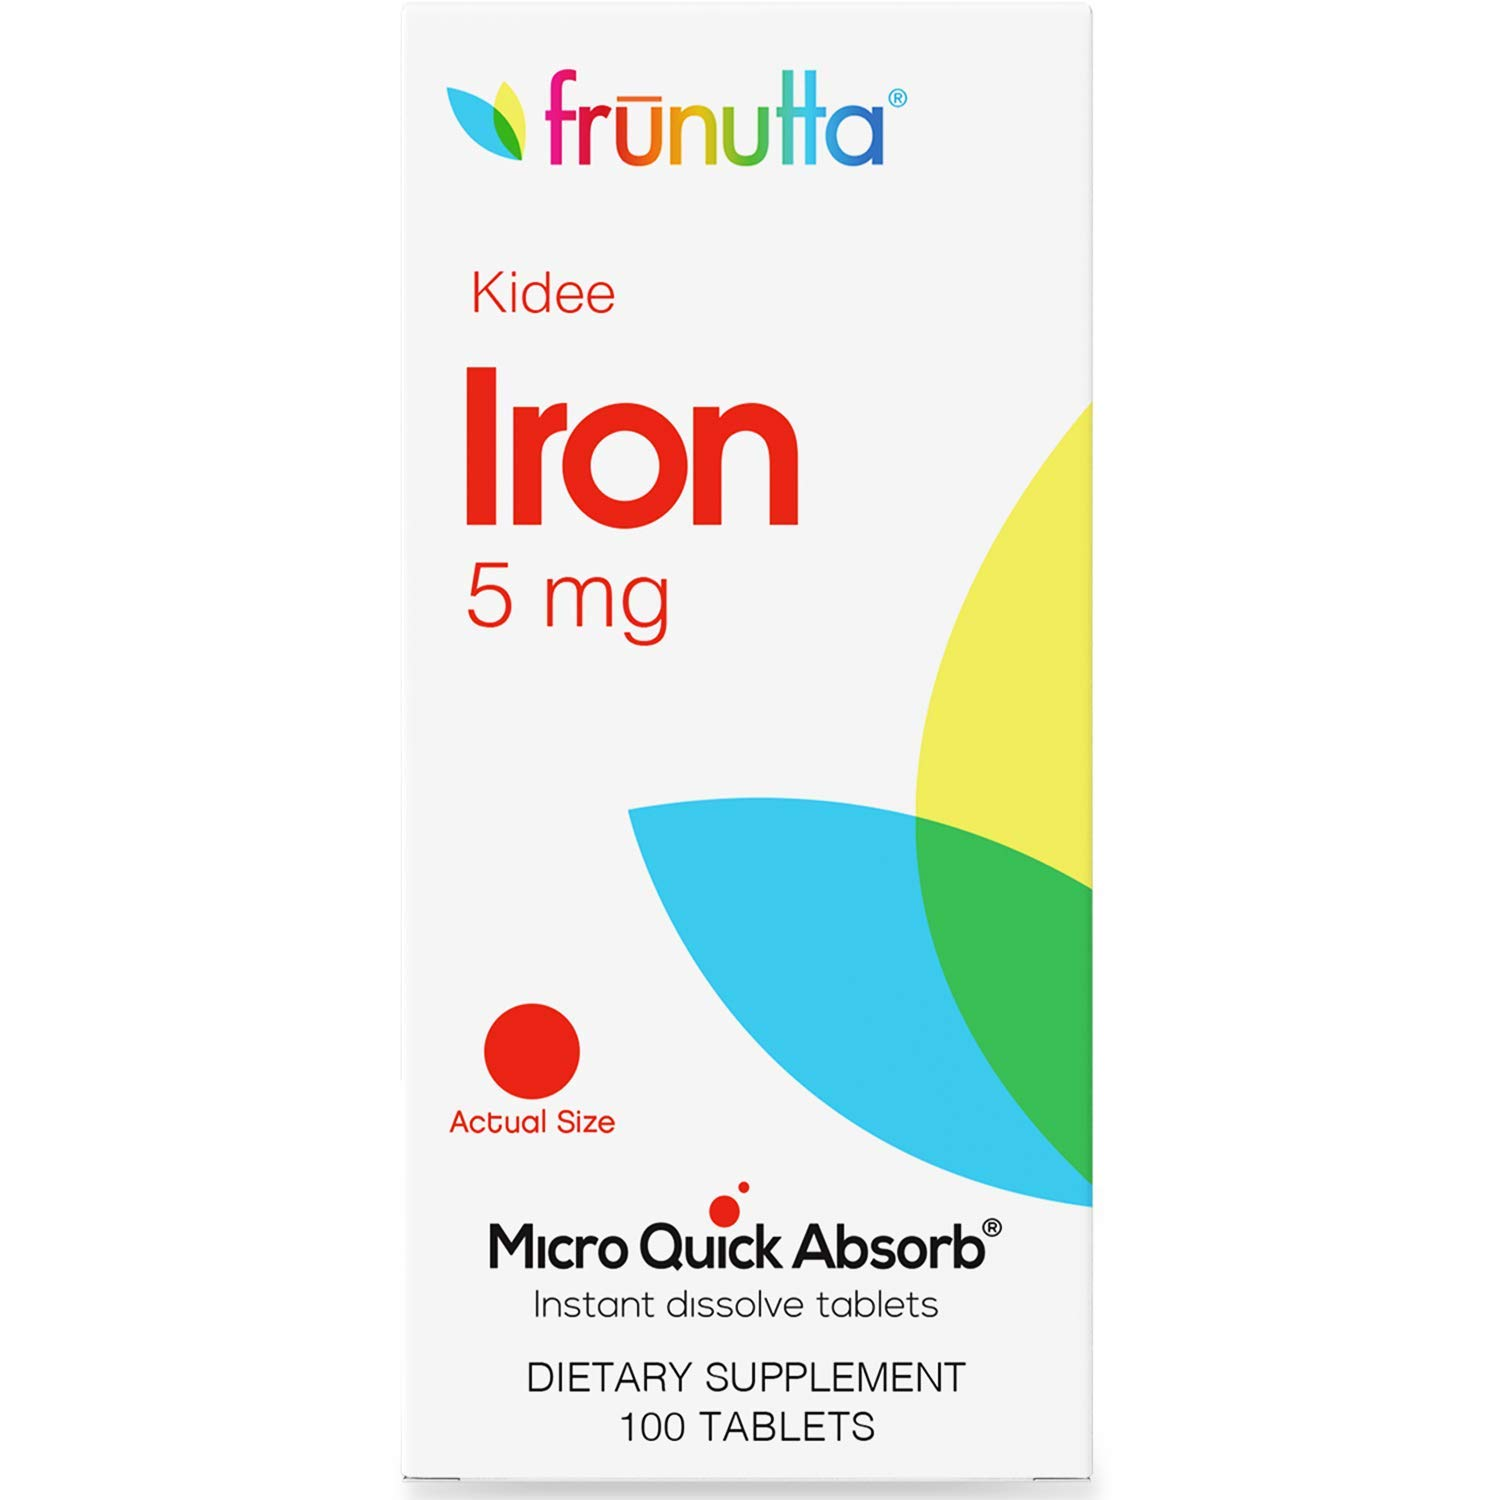 Frunutta Kidee Iron Under The Tongue Instant Dissolve Tablets for Kids - 5 mg x 100 Tablets for Children - Made in USA - Non-GMO, Gluten Free and No Additives